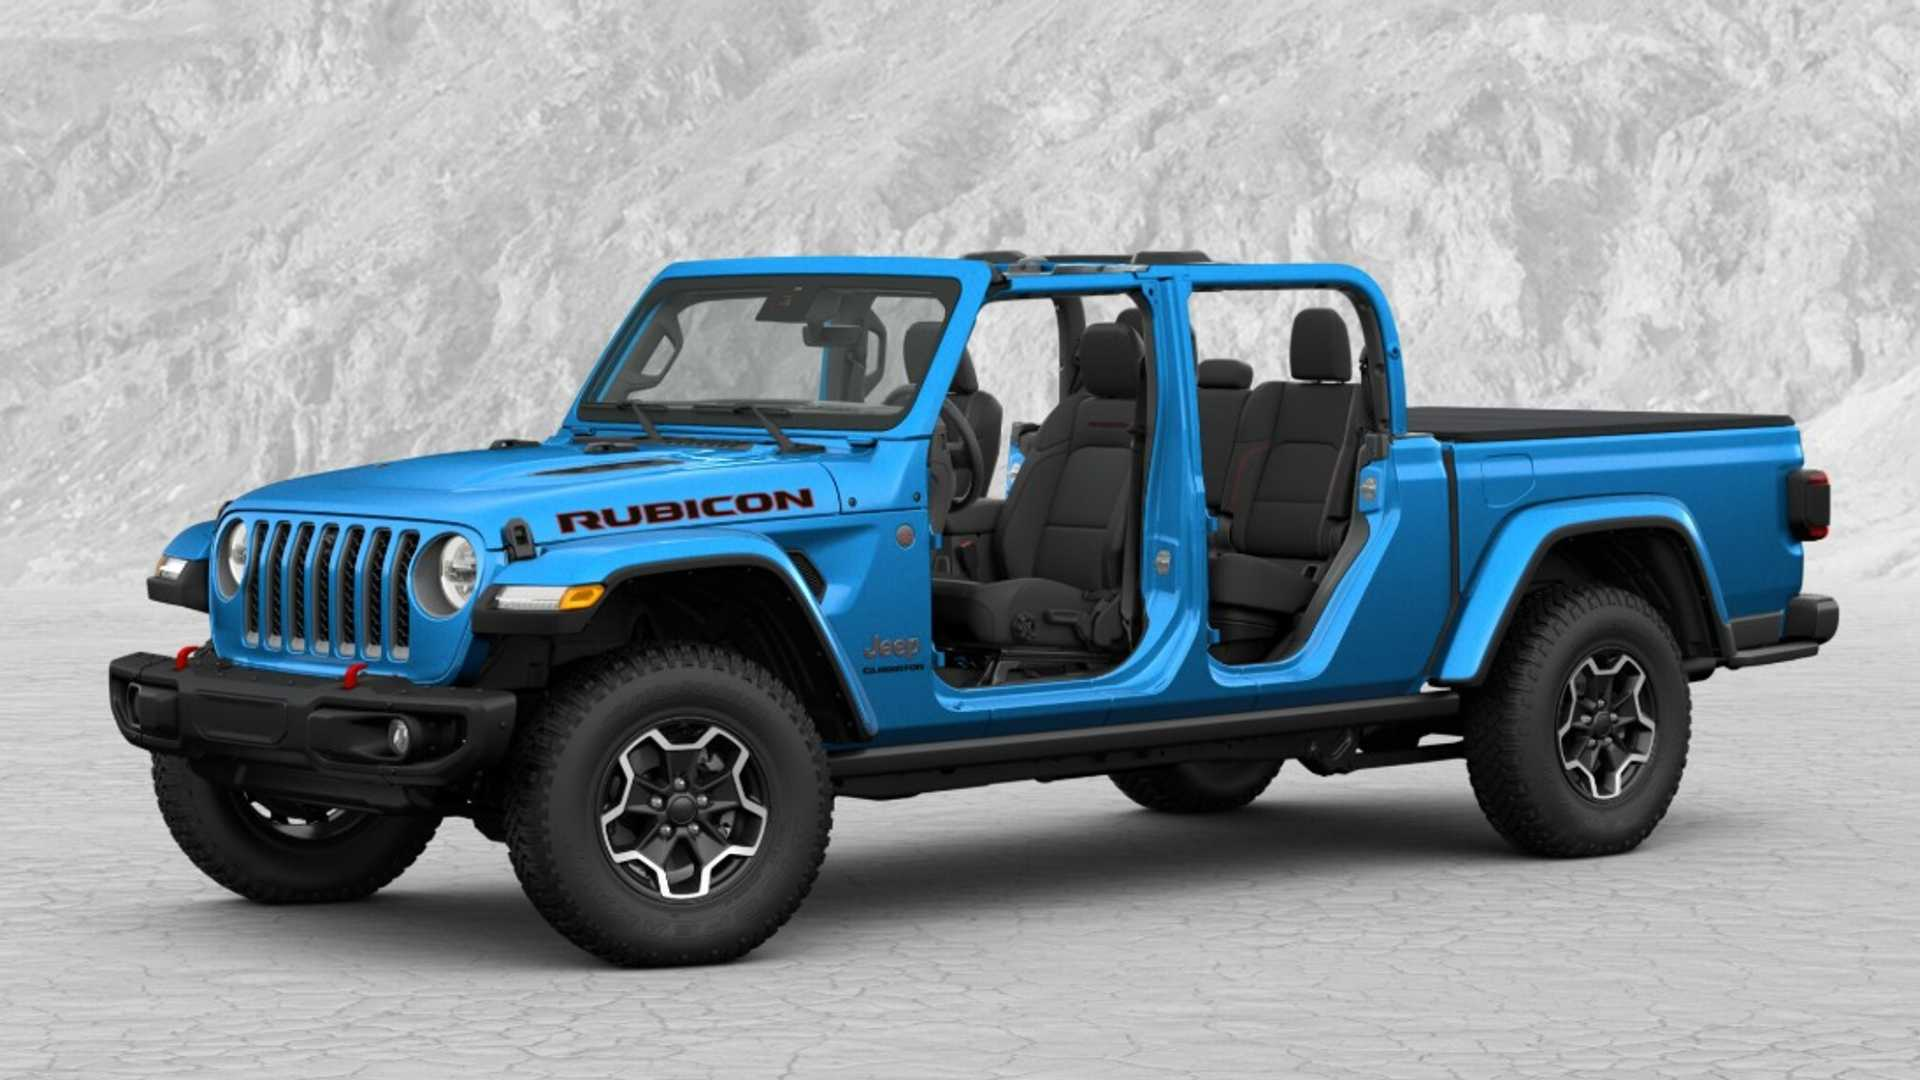 17 New Price Of 2020 Jeep Gladiator Spesification for Price Of 2020 Jeep Gladiator